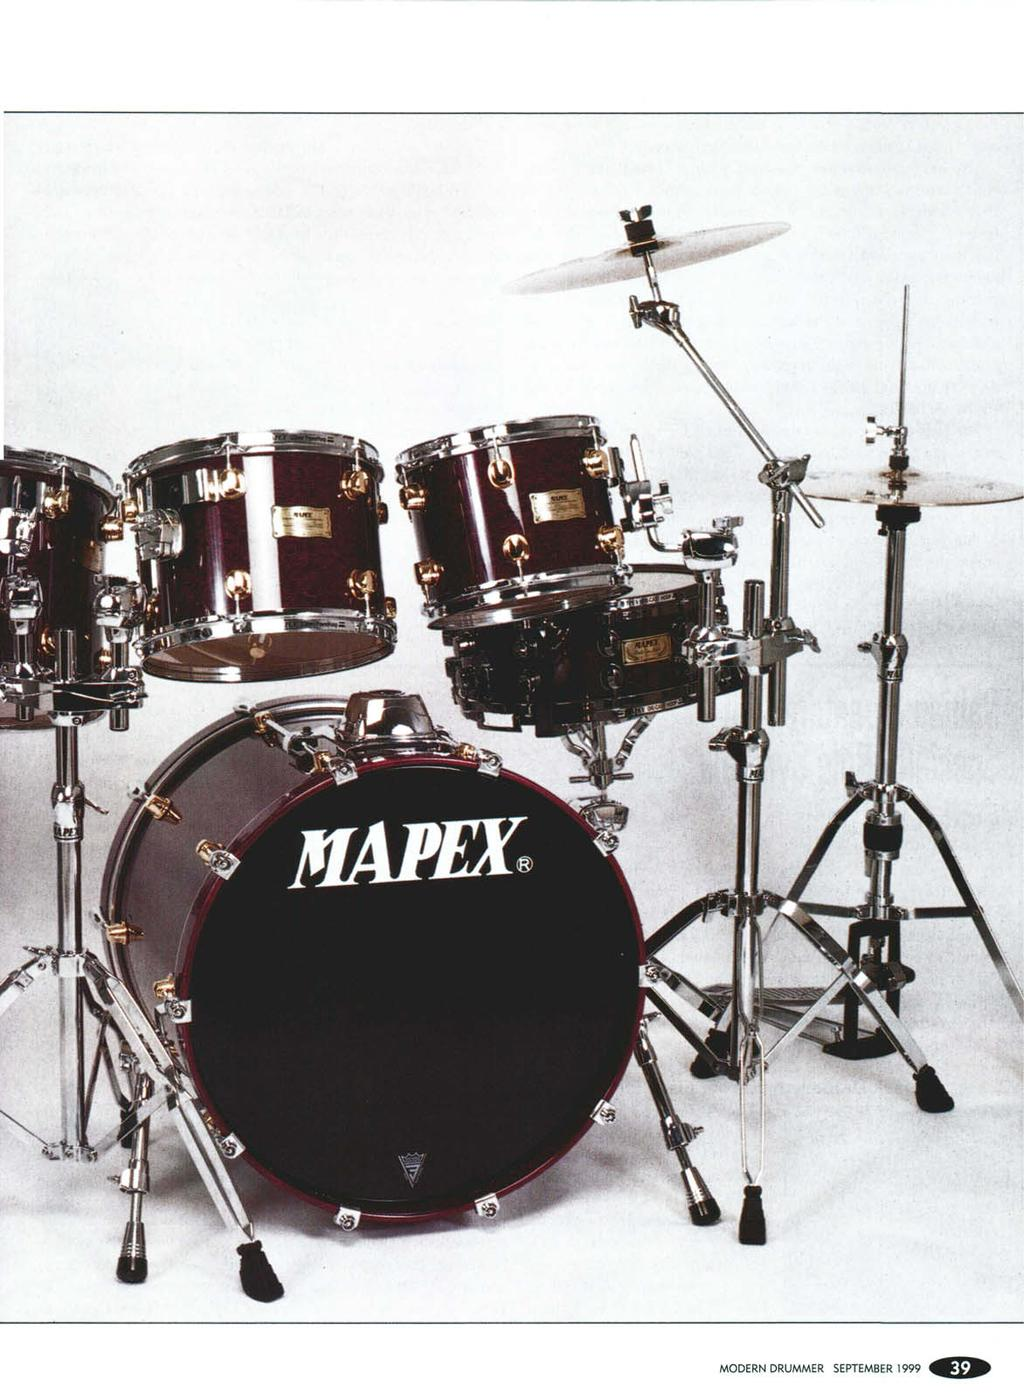 Comfort size toms may be smaller than usual but the bass drum is a massive 18x22 it came fitted with a remo powerstroke 3 batter with a falam slam